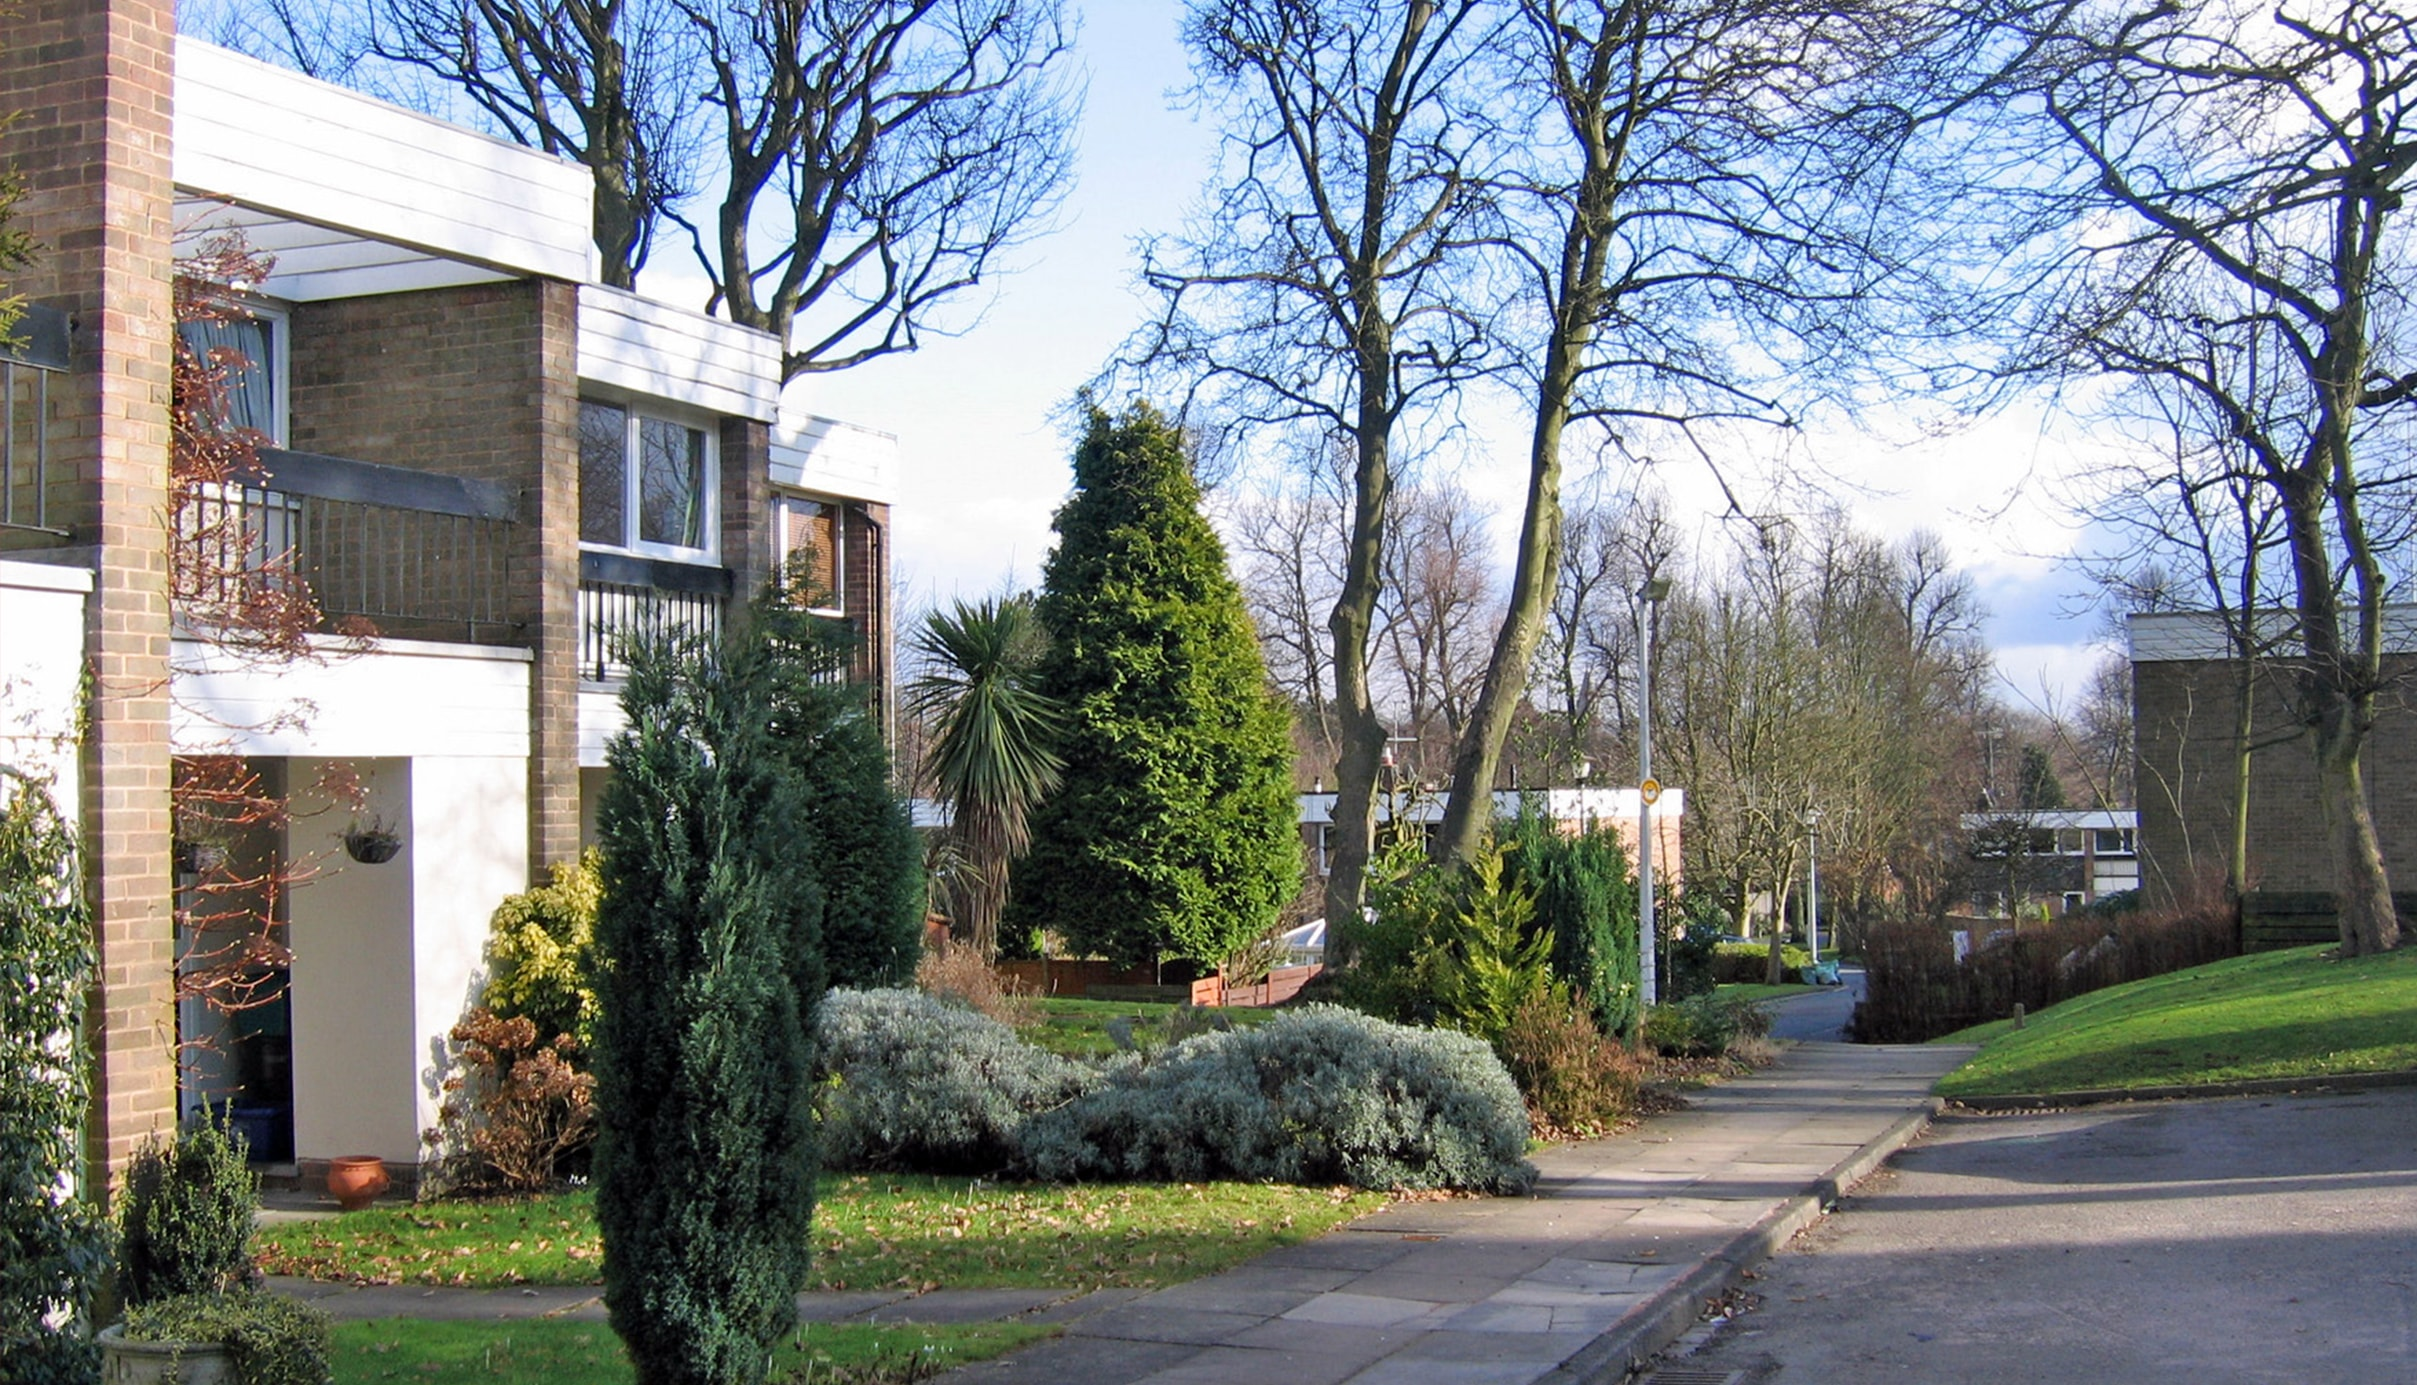 John Madin's housing schemes in Edgbaston